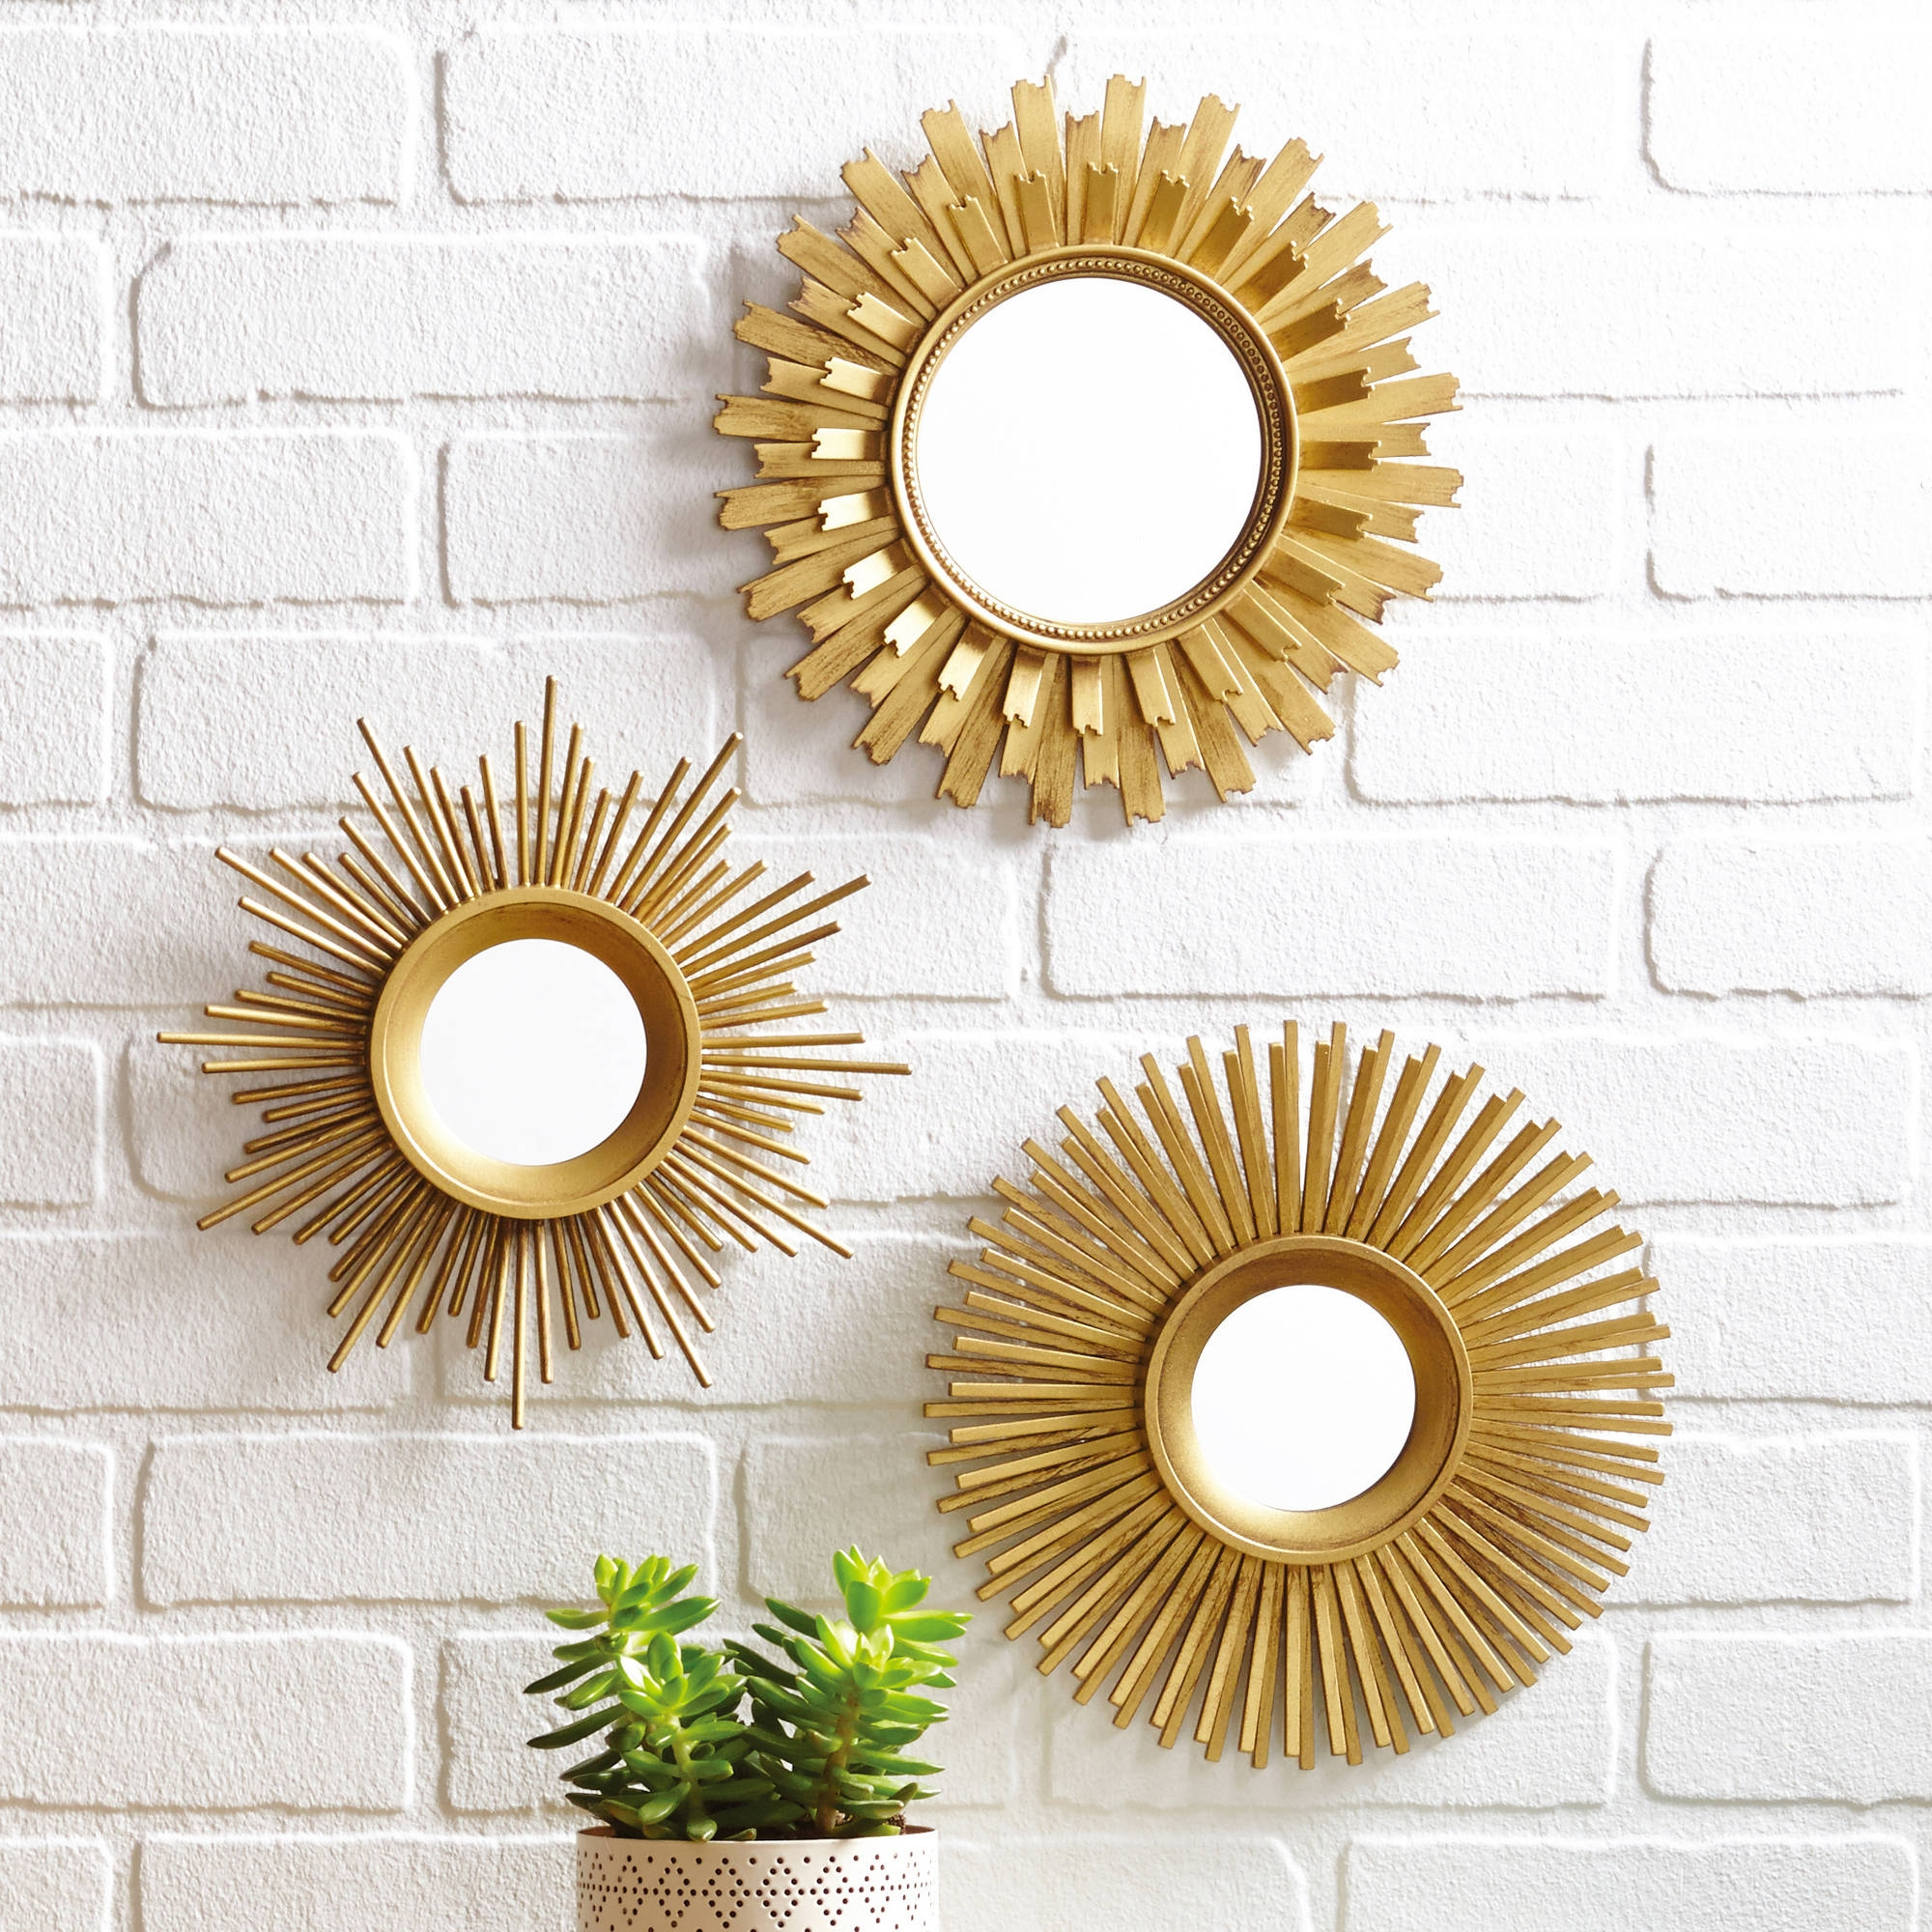 Decor 27 Enticing Small Decorative Round Wall Mirrors With In Decorative Small Mirrors (Image 2 of 15)